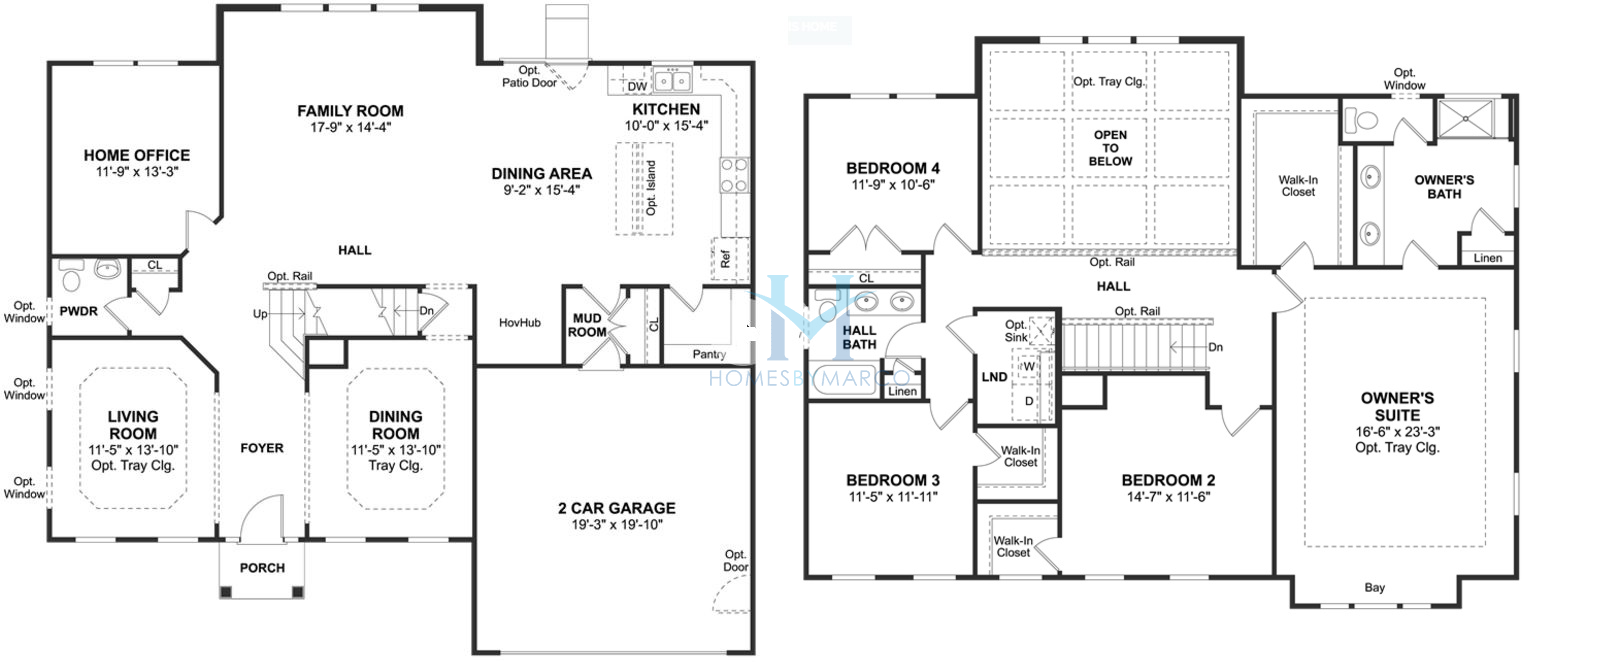 K Hovnanian Floor Plans: Dover Model In The Sagebrook Subdivision In South Elgin